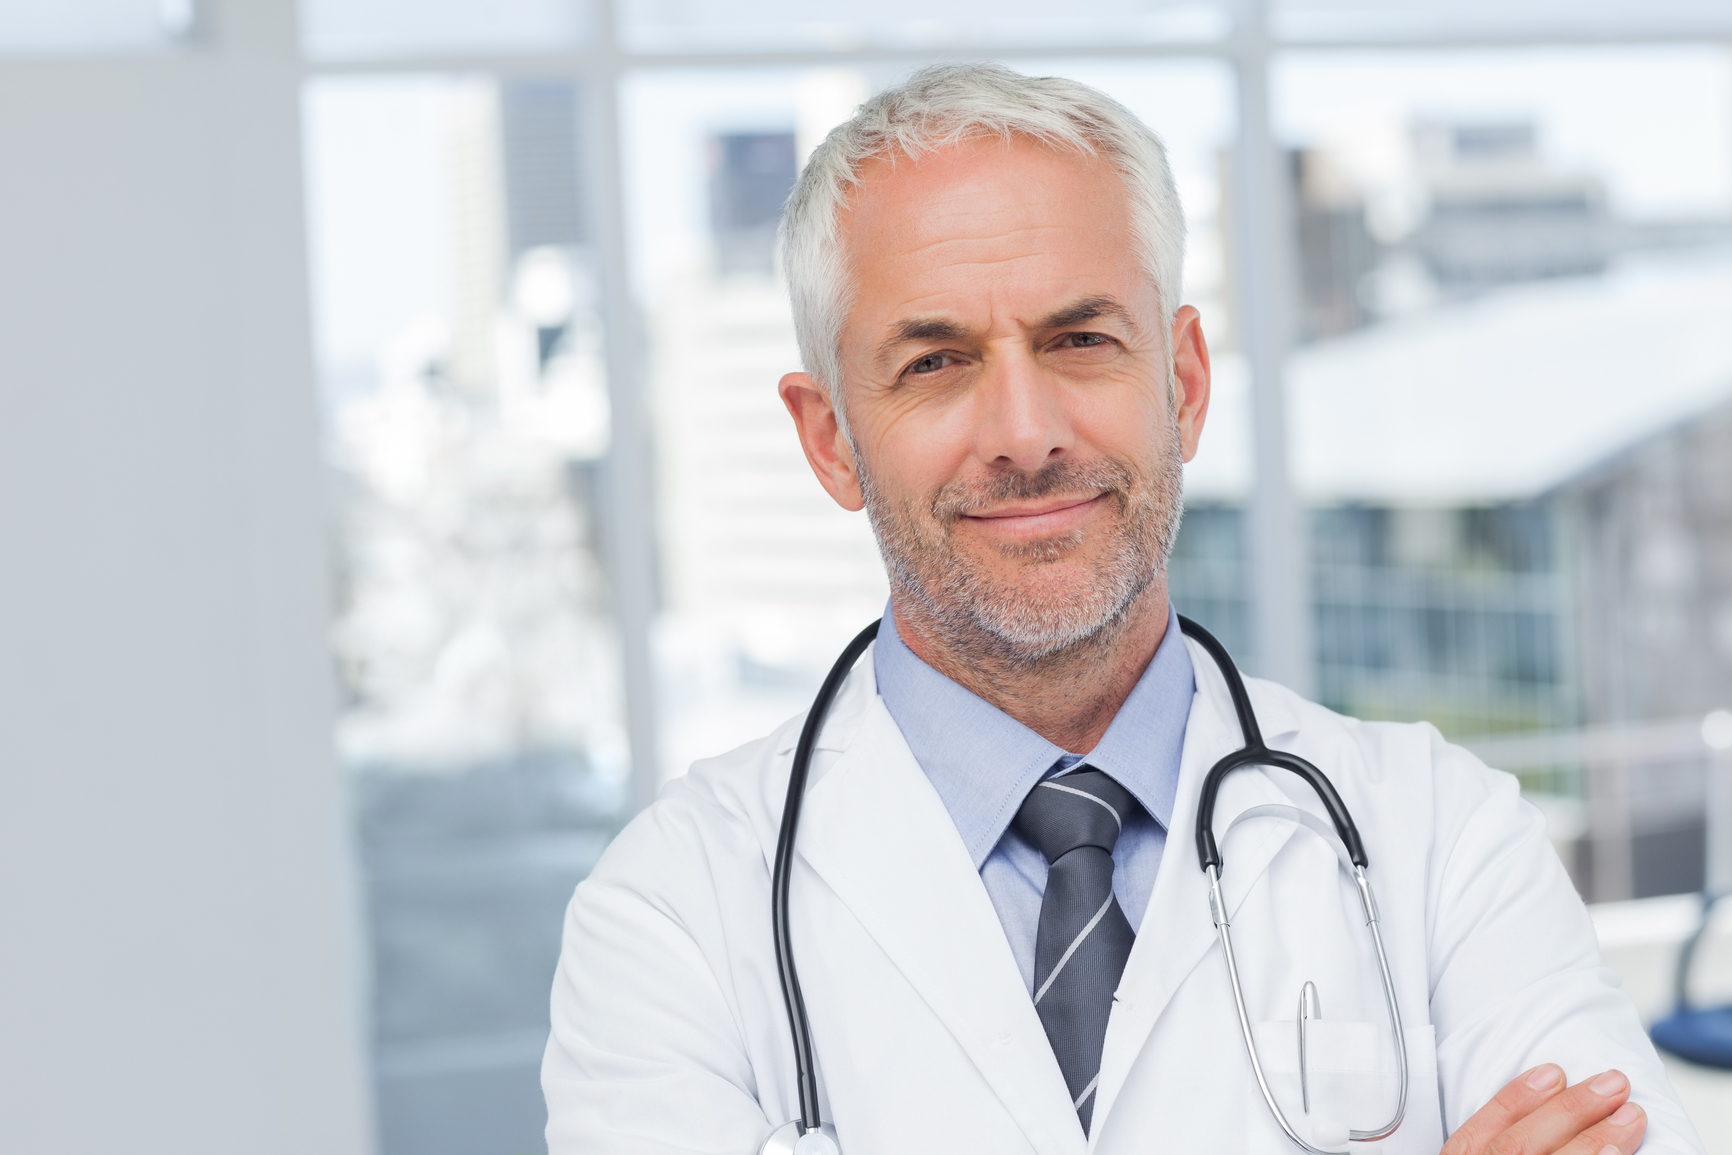 50s, Mature Adult, Man, Male, Caucasian, Indoors, Looking At Camera, Doctor, Practitioner, Profession, Professional, Specialist, Lab Coat, Stethoscope, Confident, Happy, Smile, Smiling, Standing, Clinic, Healthcare, Hospital, Medical, Staff, Attractive, Handsome, Grey Hair, Portrait, Arms Crossed